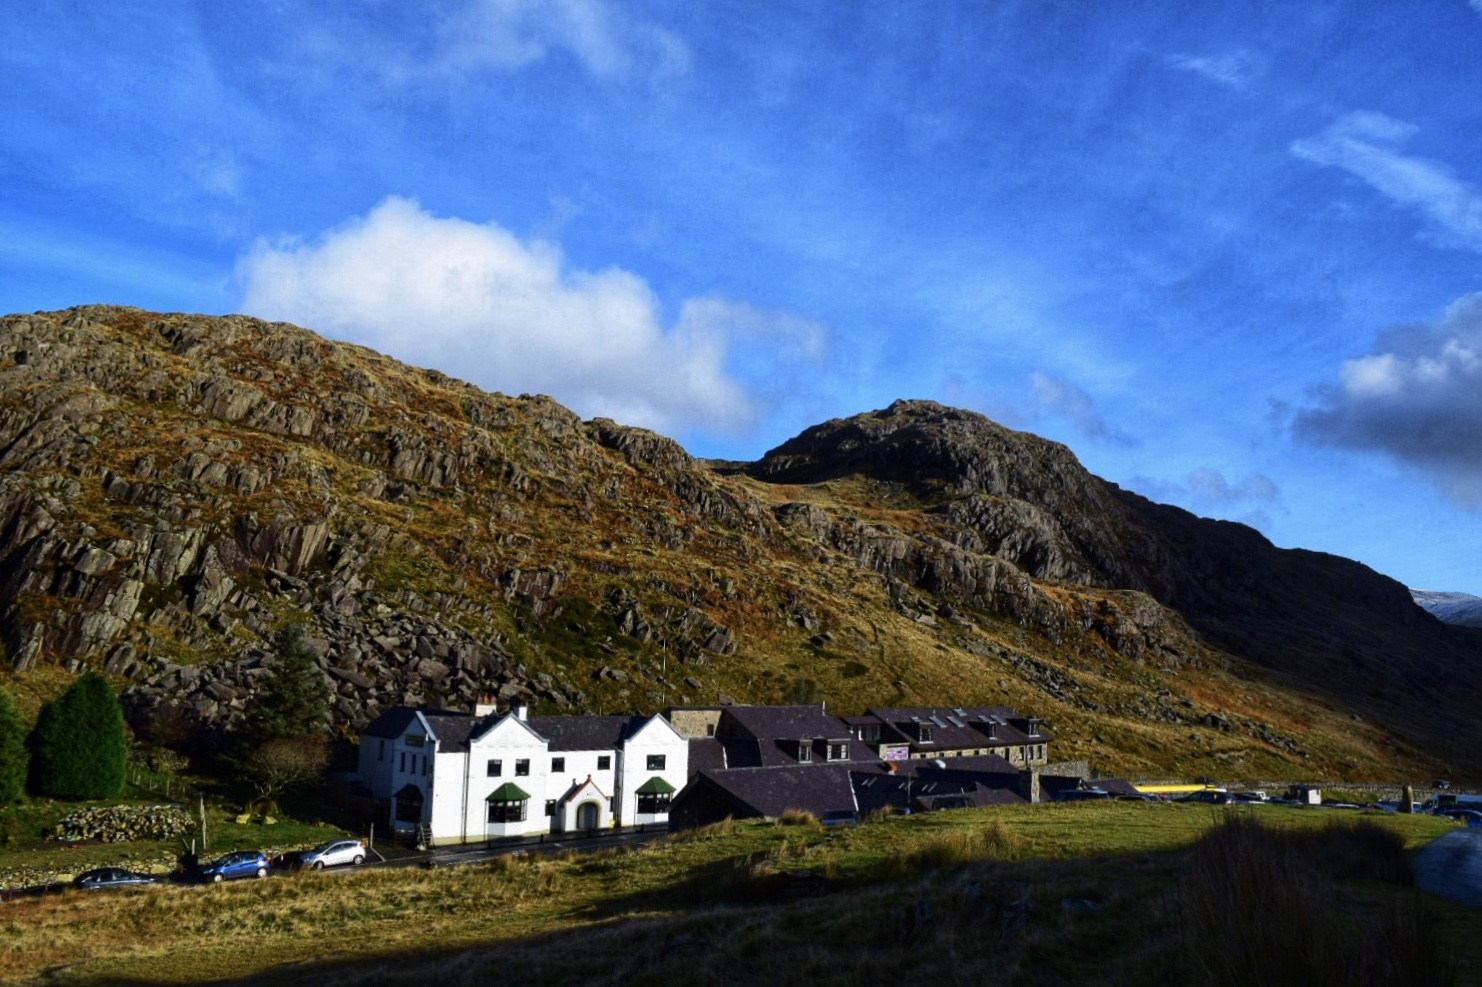 Snowdon youth hostel